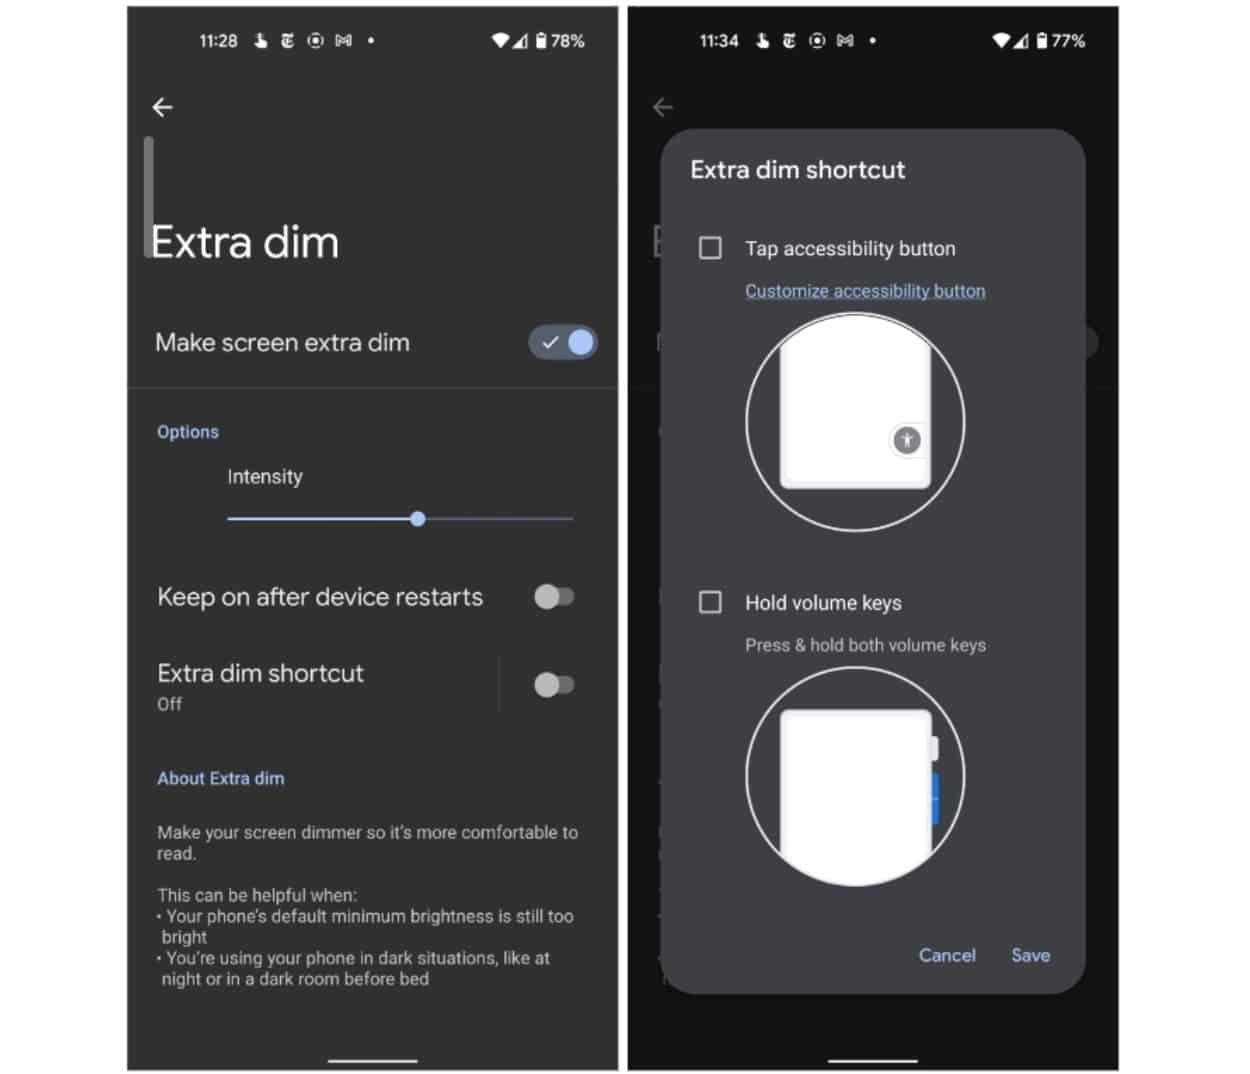 Android 12 Developer Preview 3 Gets 'Extra dim' Feature to Reduce Screen Brightness